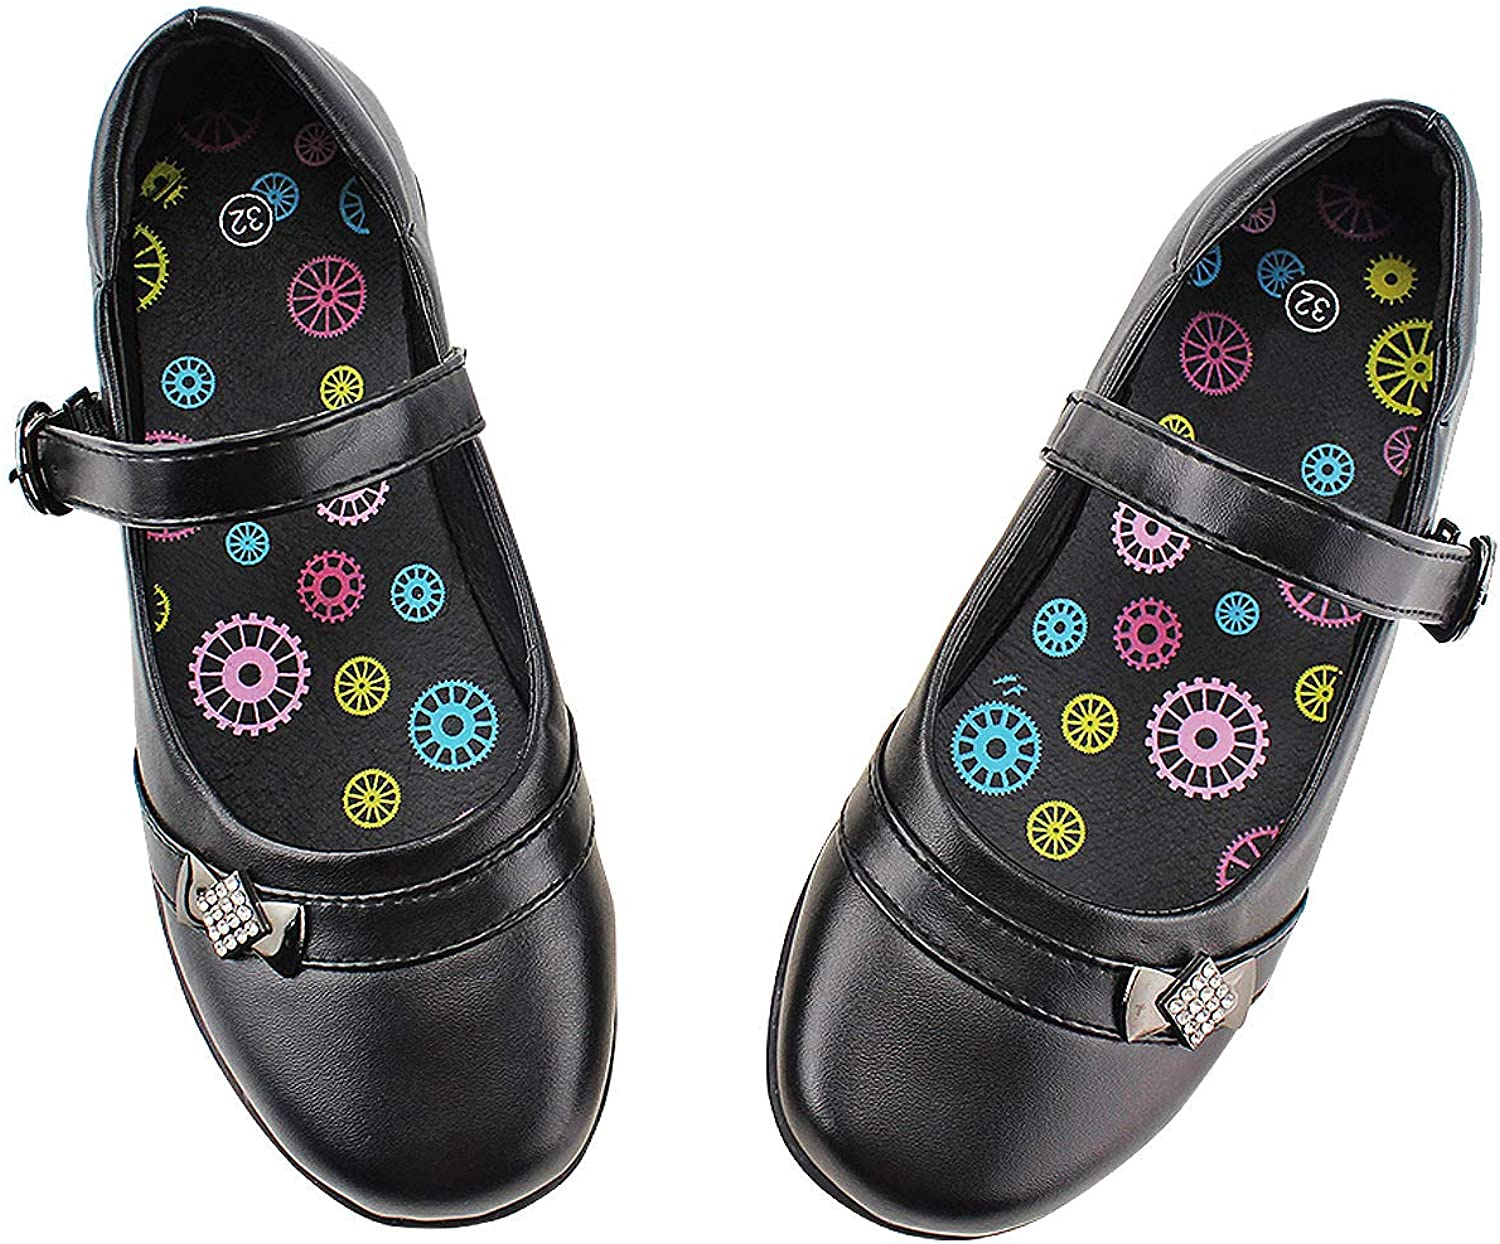 Girls School Uniform Shoes Oxford Embroidered Mary Jane Flat